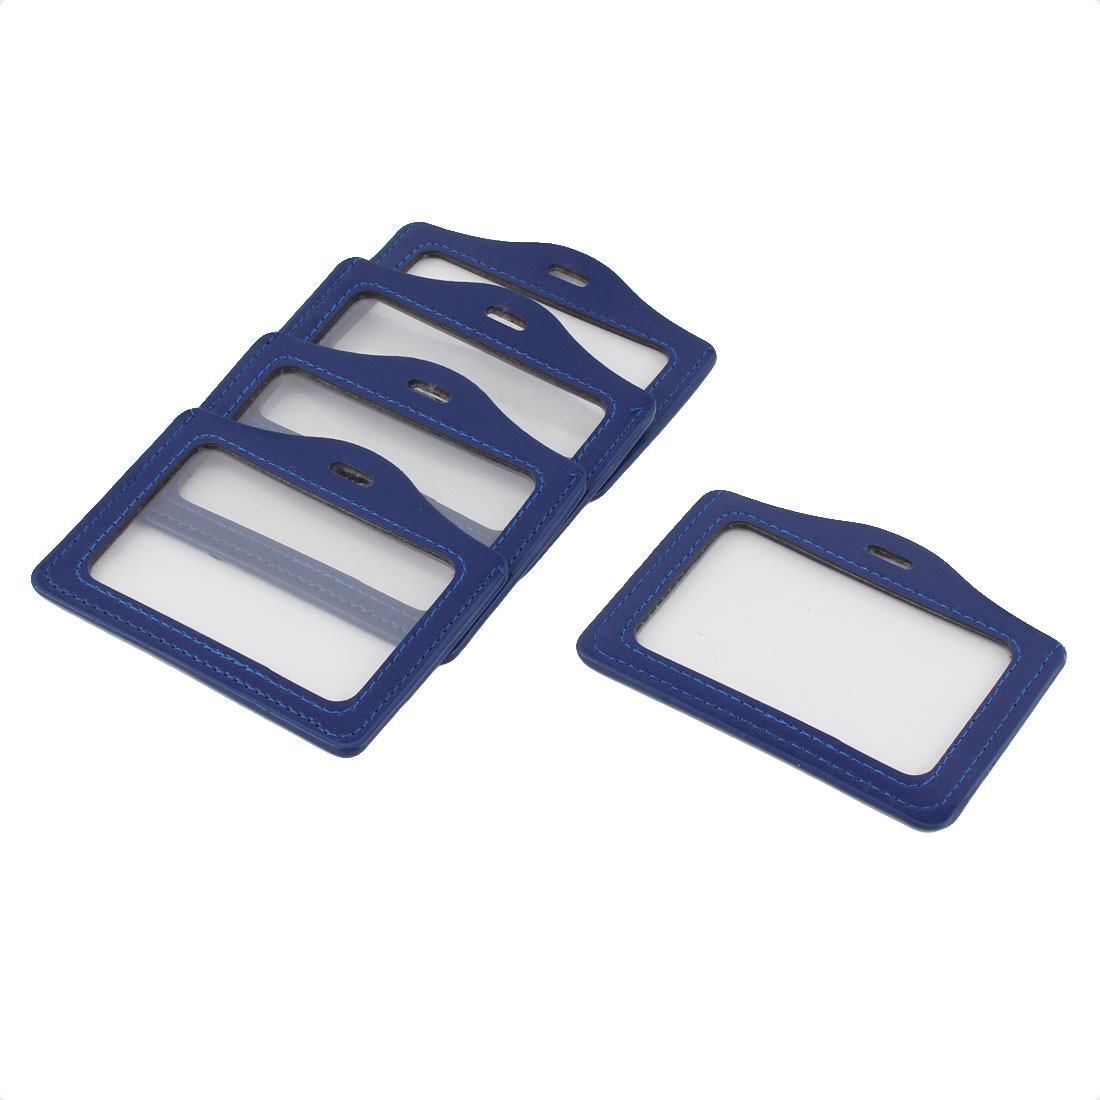 School Office Faux Leather ID Badge Card Holder Container Blue Clear 5pcs